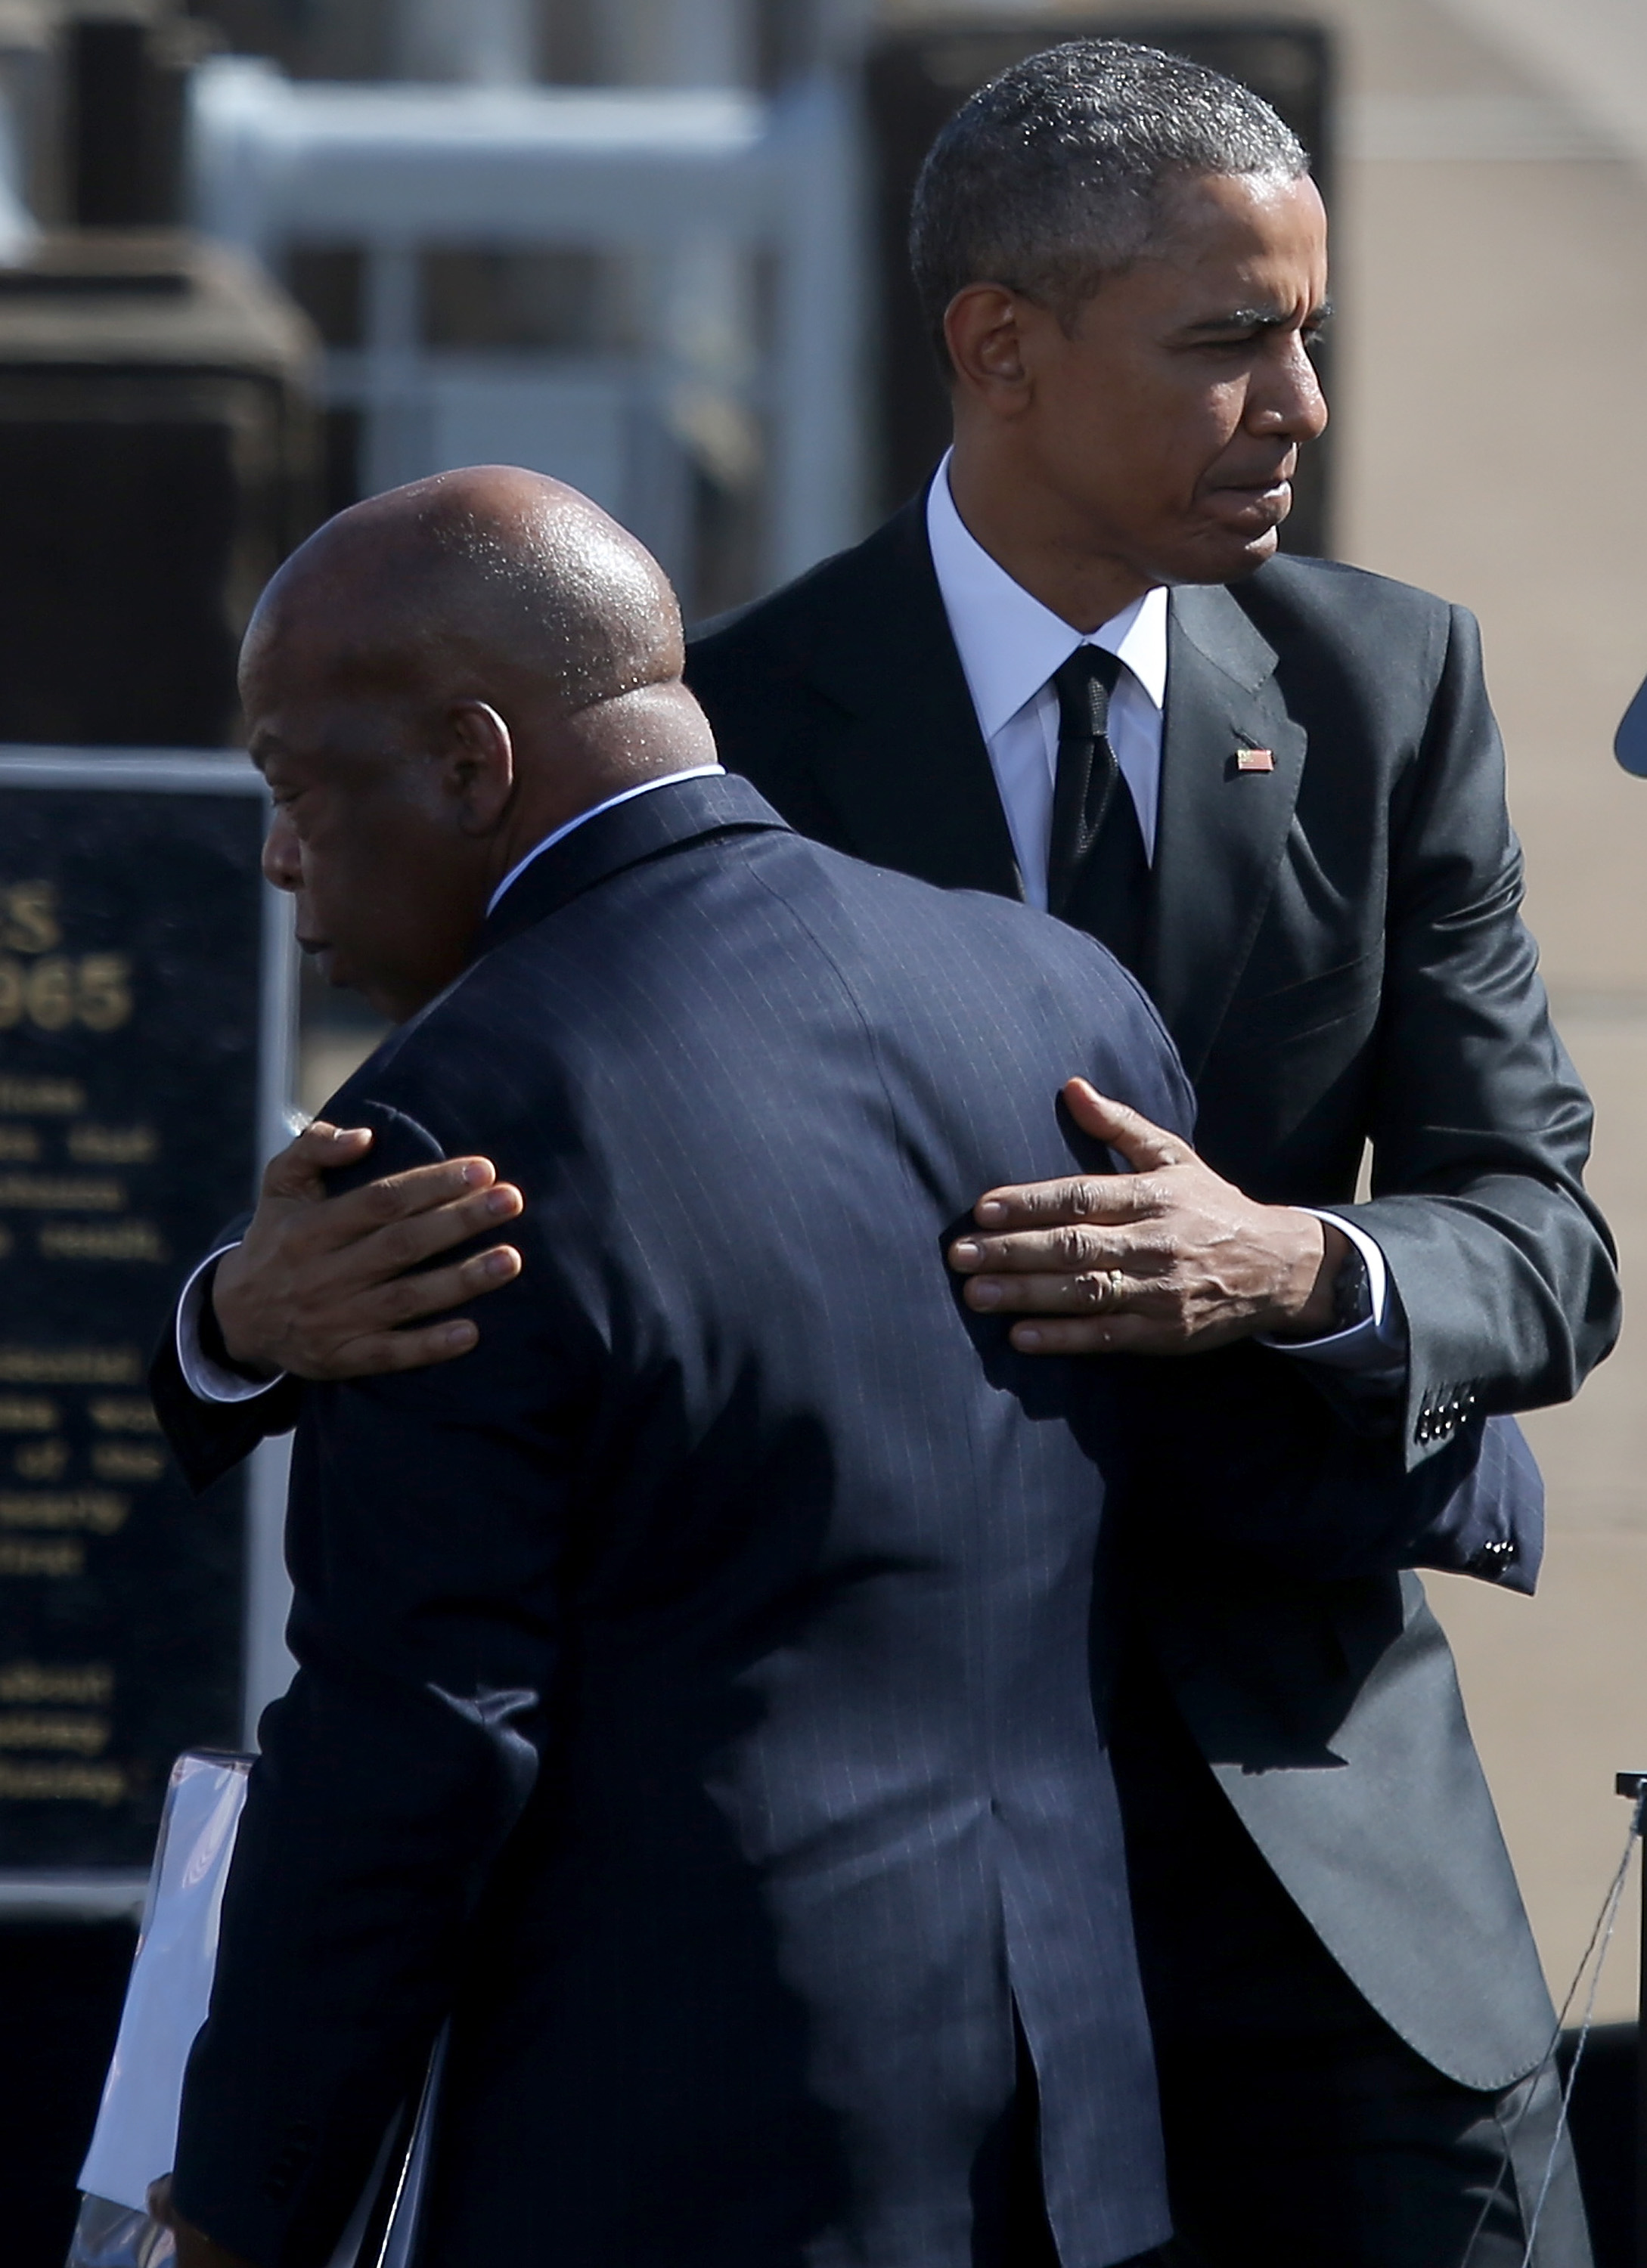 SELMA, AL - MARCH 07:  U.S. President Barack Obama (R) hugs U.S. Rep John Lewis (D-GA) speaks in front of the Edmund Pettus Bridge on March 7, 2015 in Selma, Alabama. Selma is commemorating the 50th anniversary of the famed civil rights march from Selma to Montgomery that resulted in a violent confrontation with Selma police and State Troopers on the Edmund Pettus Bridge on March 7, 1965.  (Photo by Justin Sullivan/Getty Images)